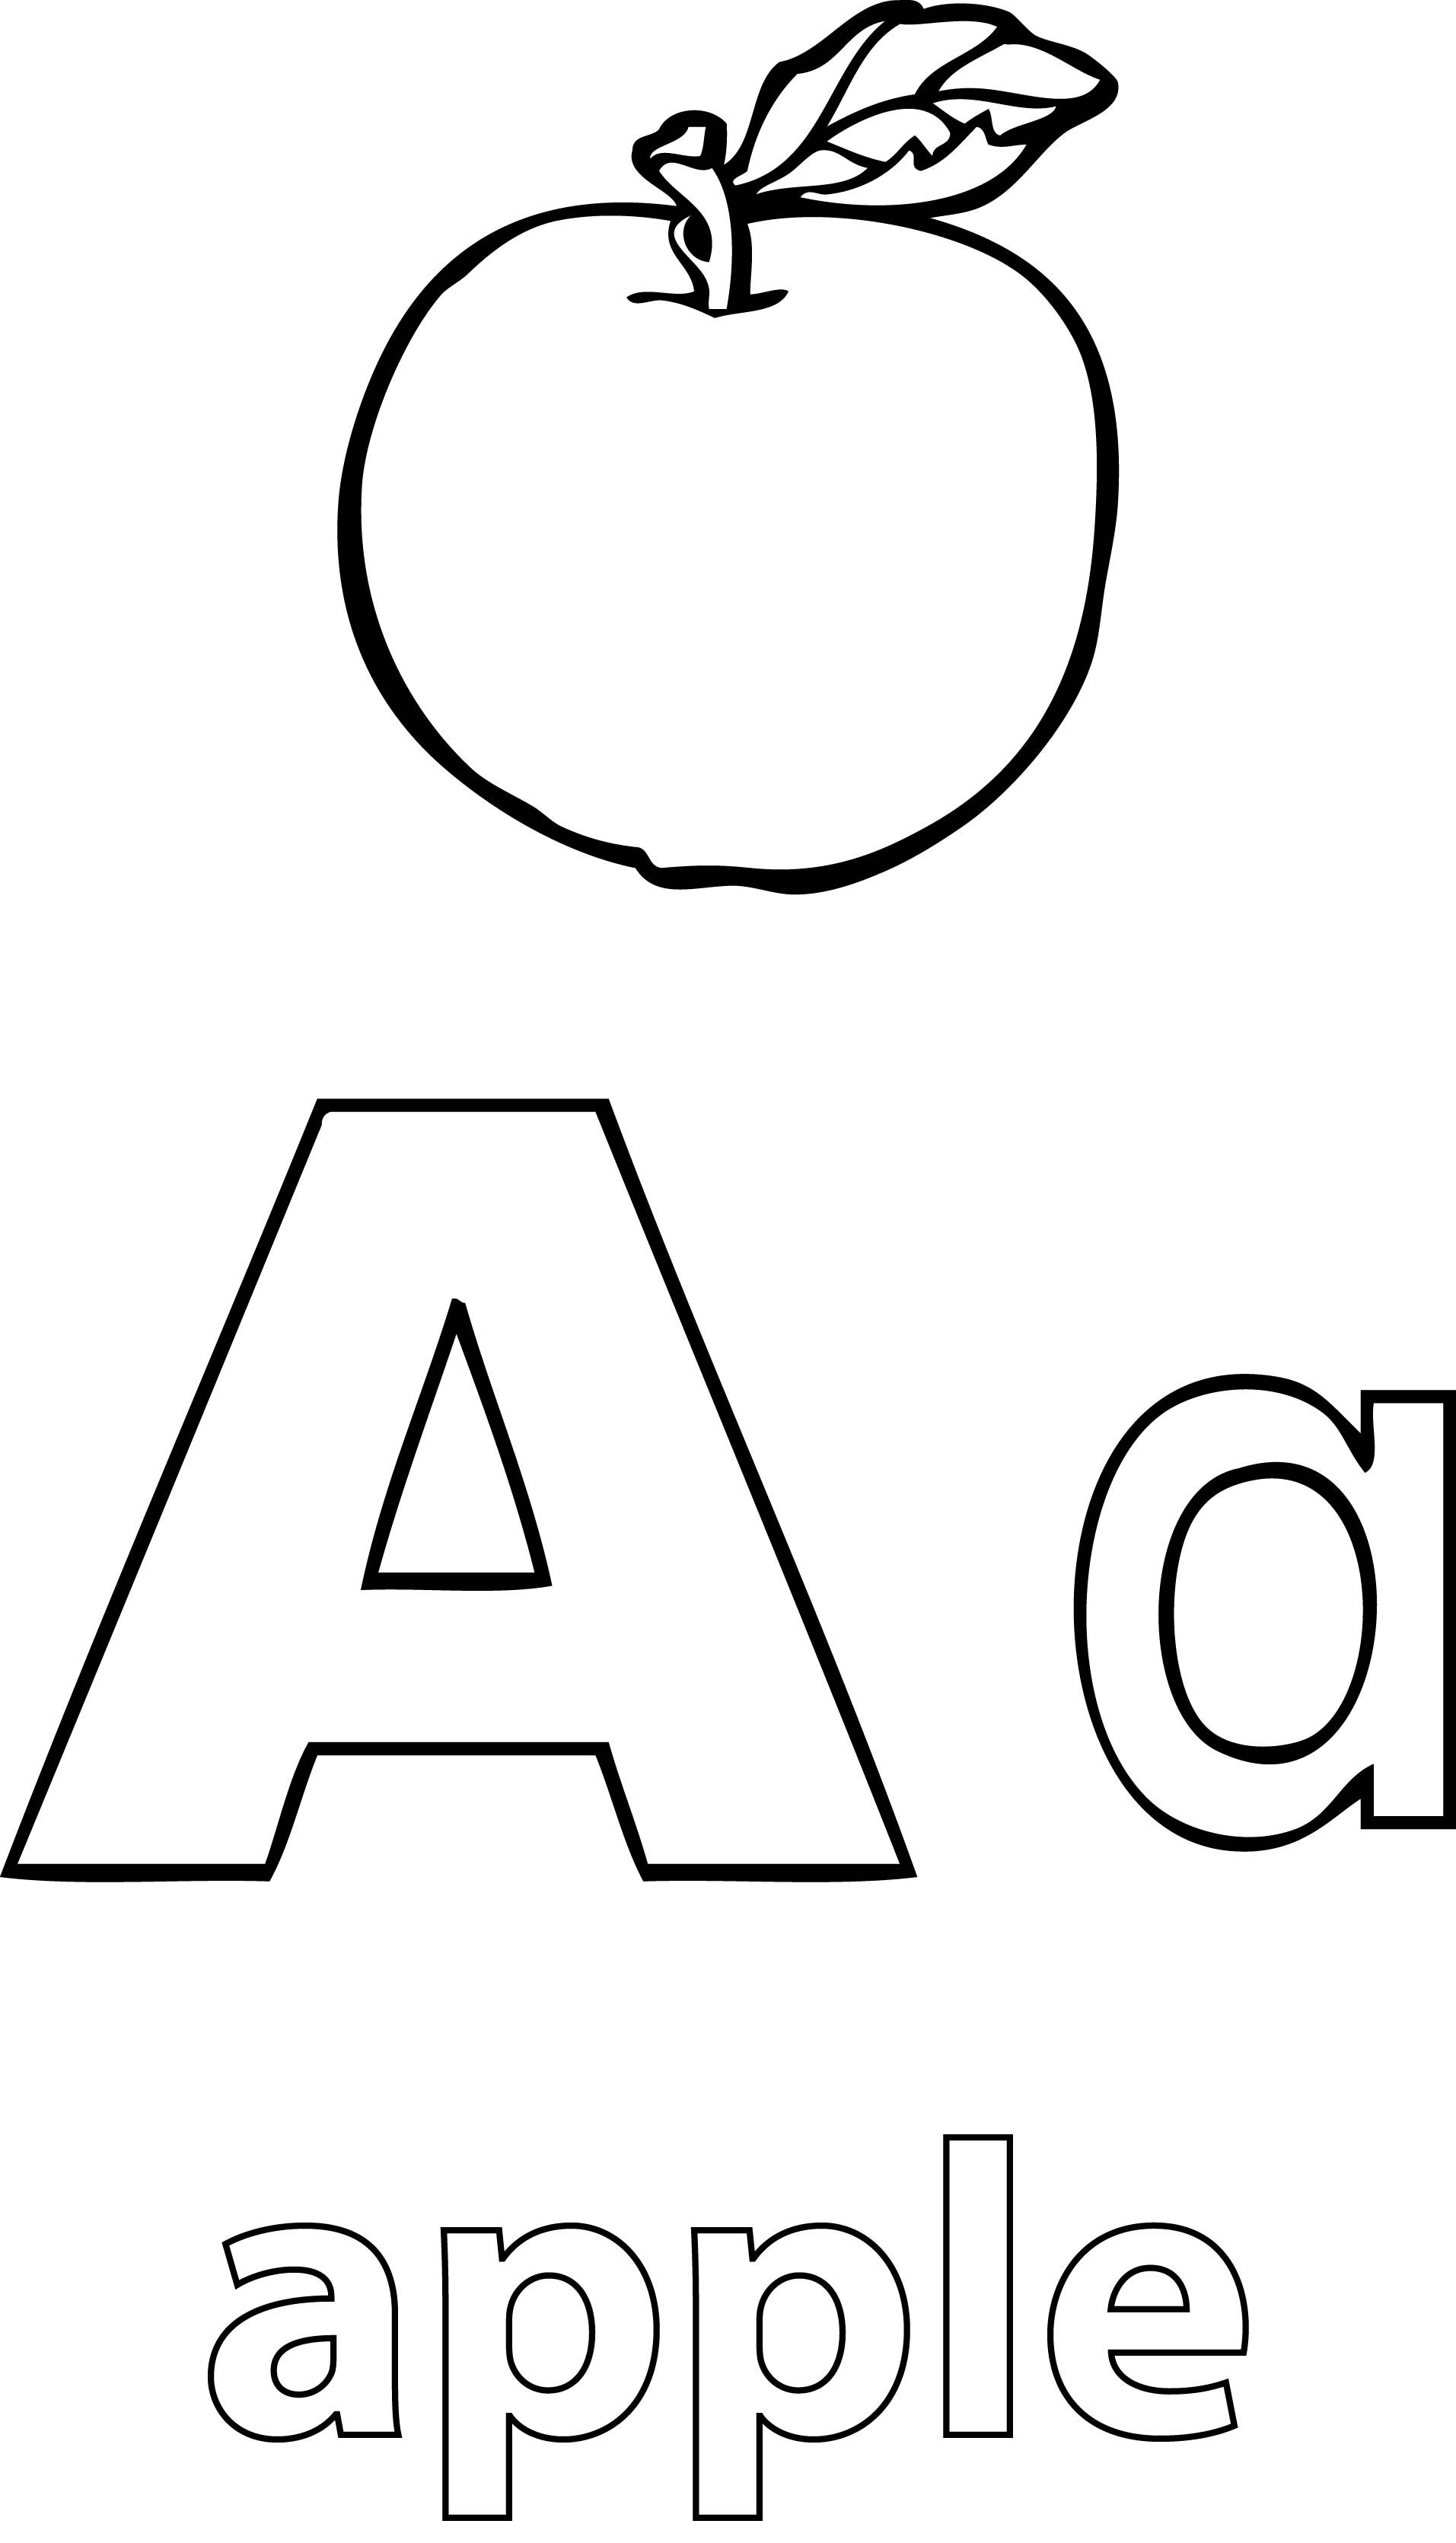 A Alphabet Apple Coloring Page Wecoloringpage Apple Coloring Pages Apple Coloring Page Apple Coloring